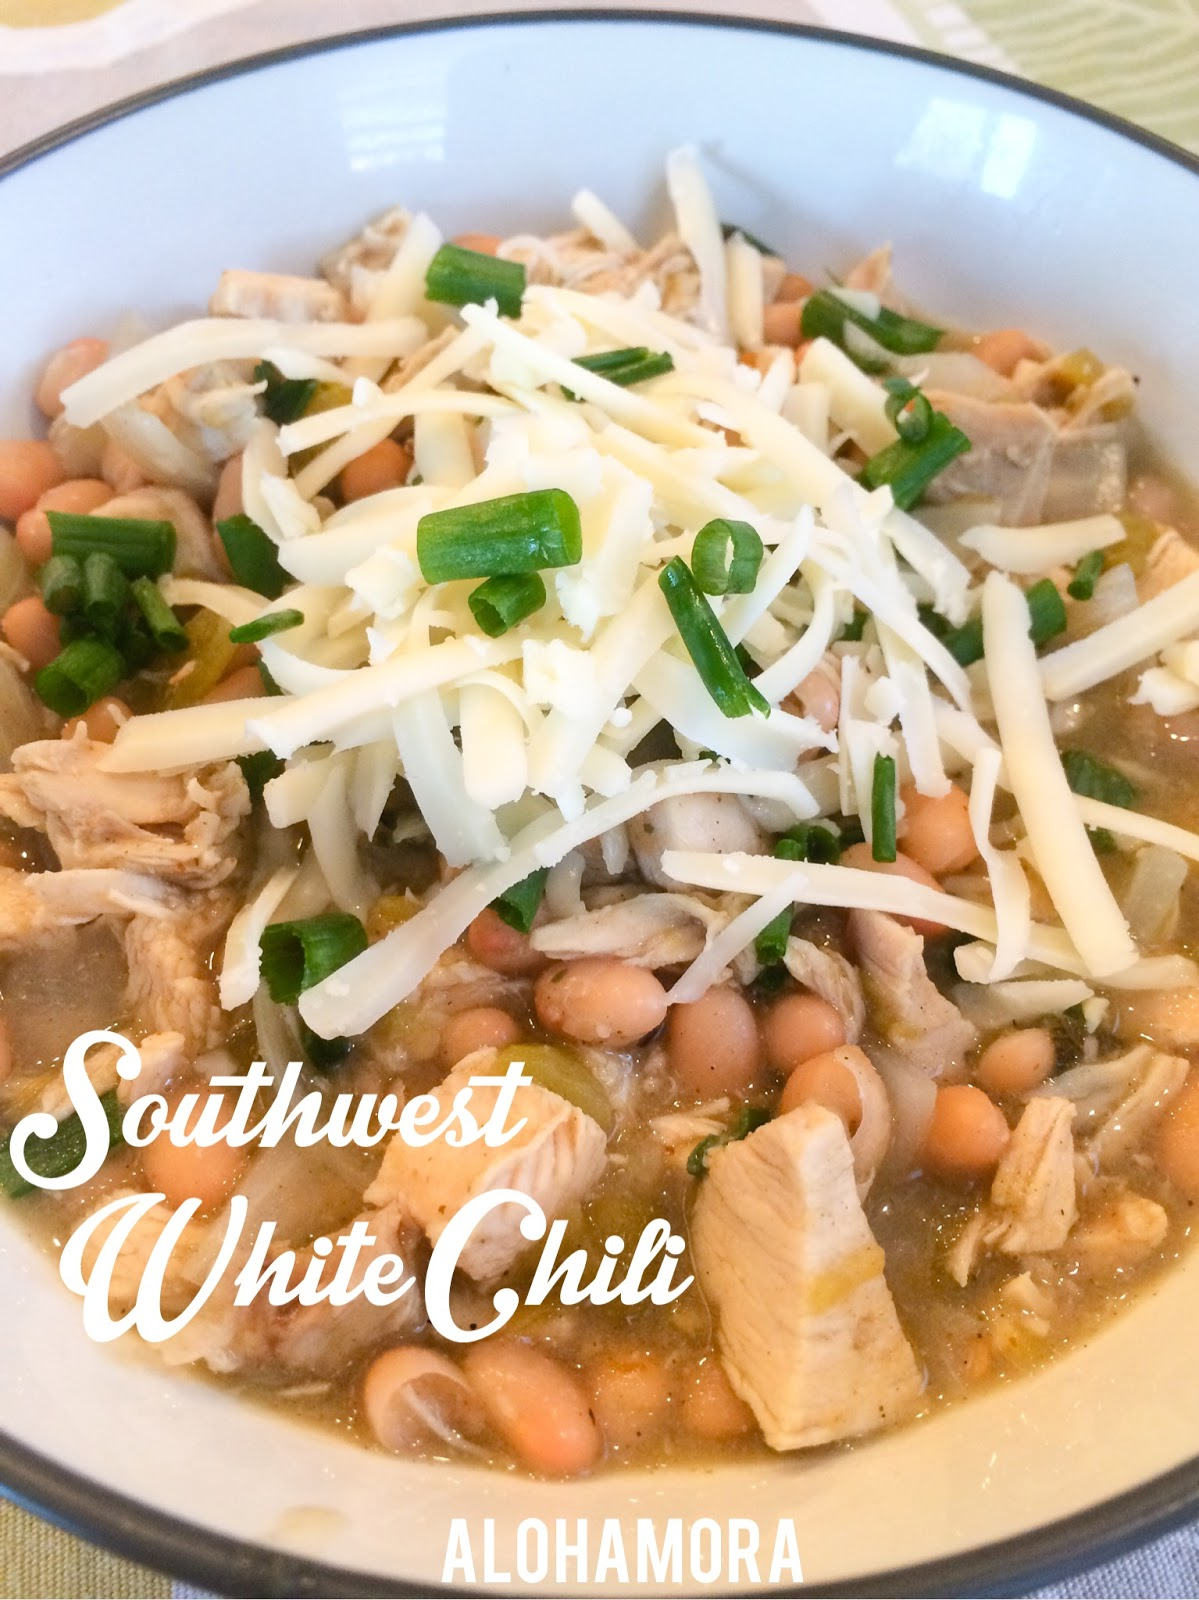 Southwest White Chili.  Healthy and diet friendly soup that is very easy to make and very flavorful.  Alohamora Open a Book http://www.alohamoraopenabook.blogspot.com/